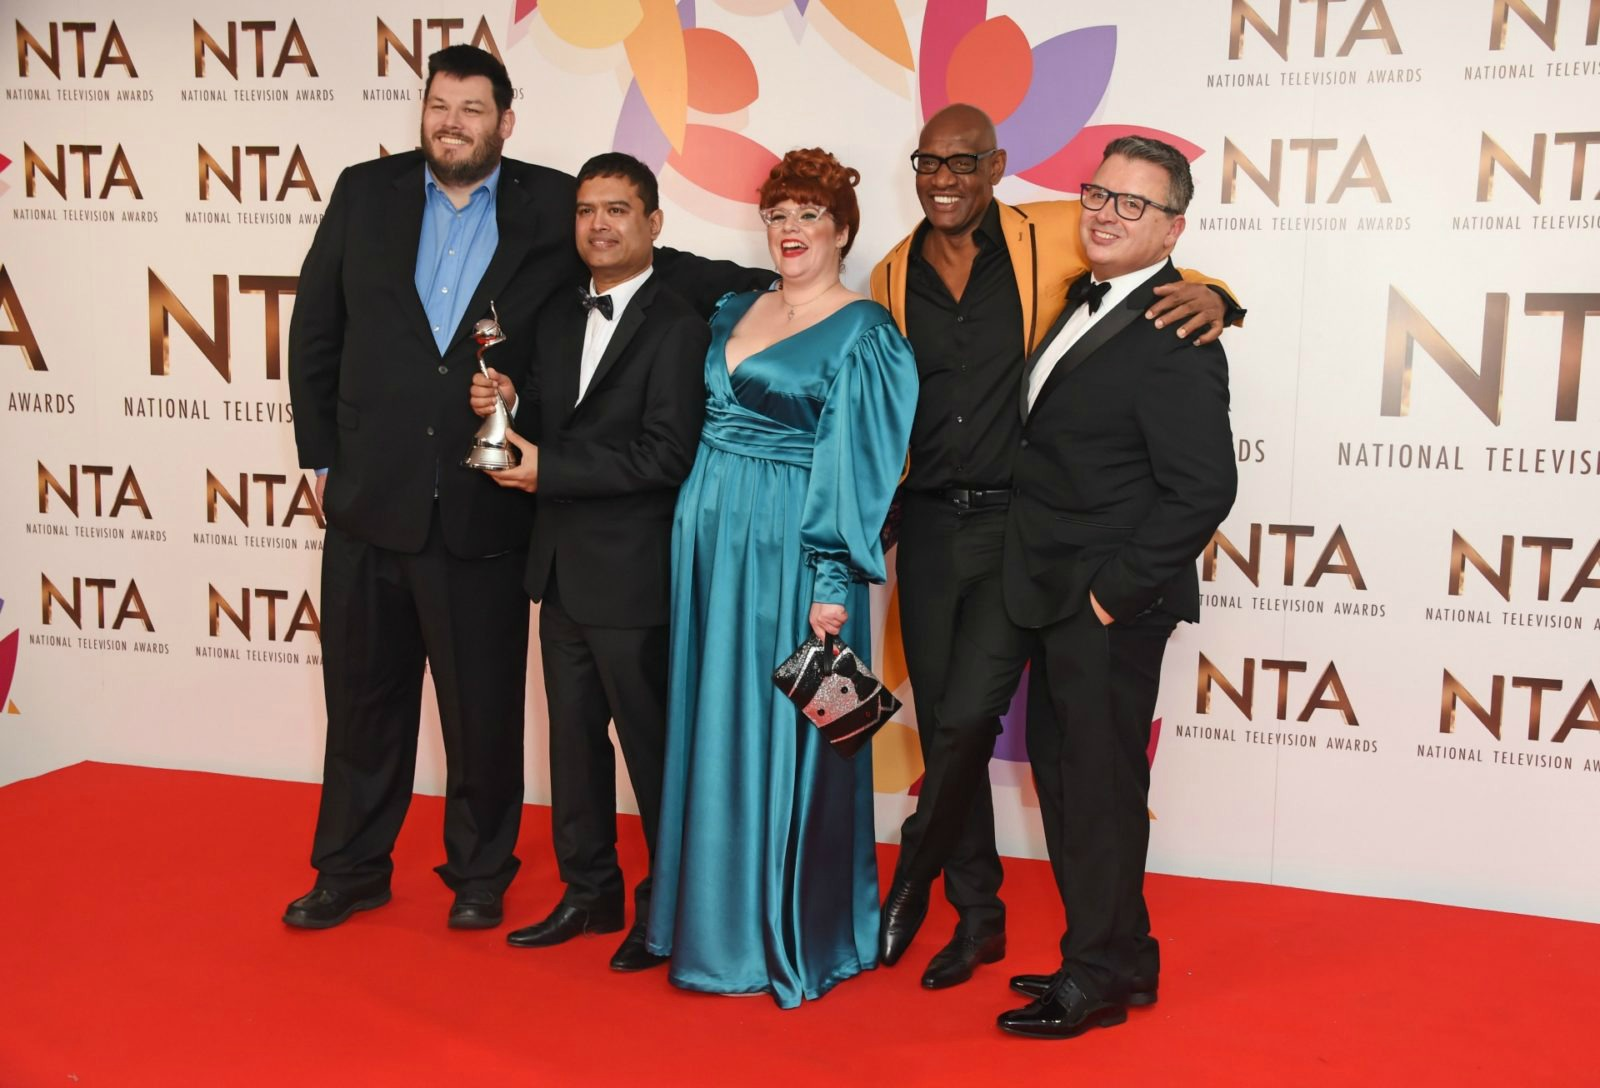 Mark Labbett, Paul Sinha, Jenny-Ryan and Shaun Wallace, and producer Michael Kelpie (L-R), pulled out all the stops at the star-studded event.